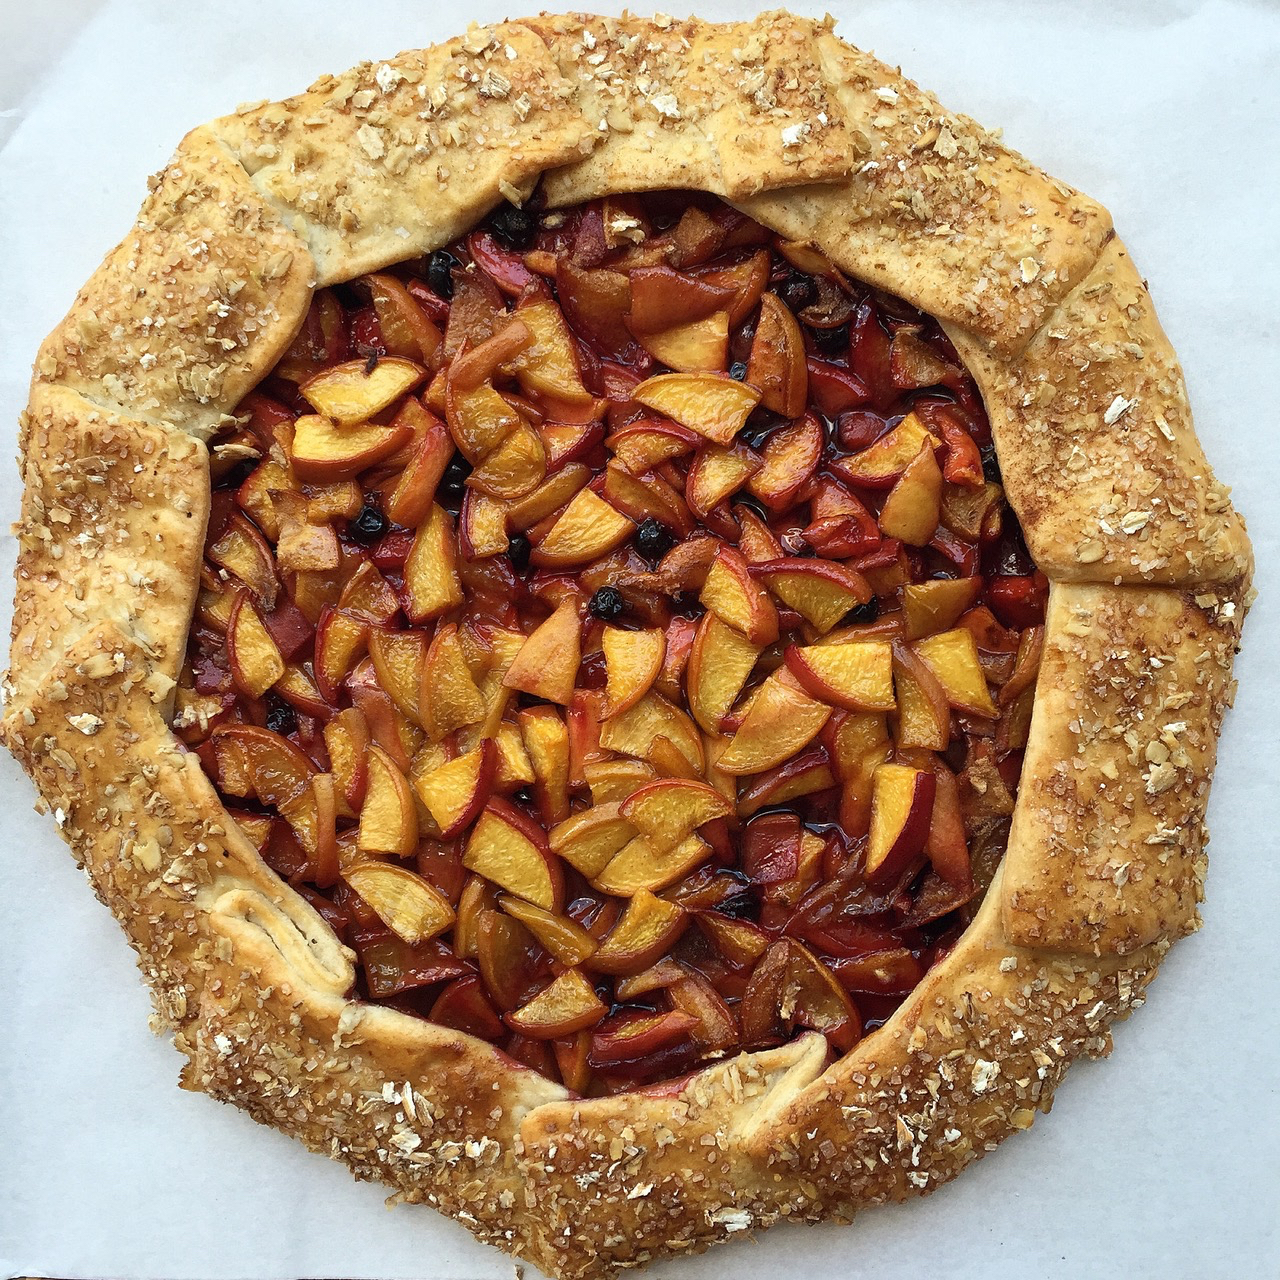 Vanilla-kissed peaches are piled atop a homemade pie crust. To make it extra pretty, brush the folded crust with egg wash and sprinkle with coarse sugar before baking.